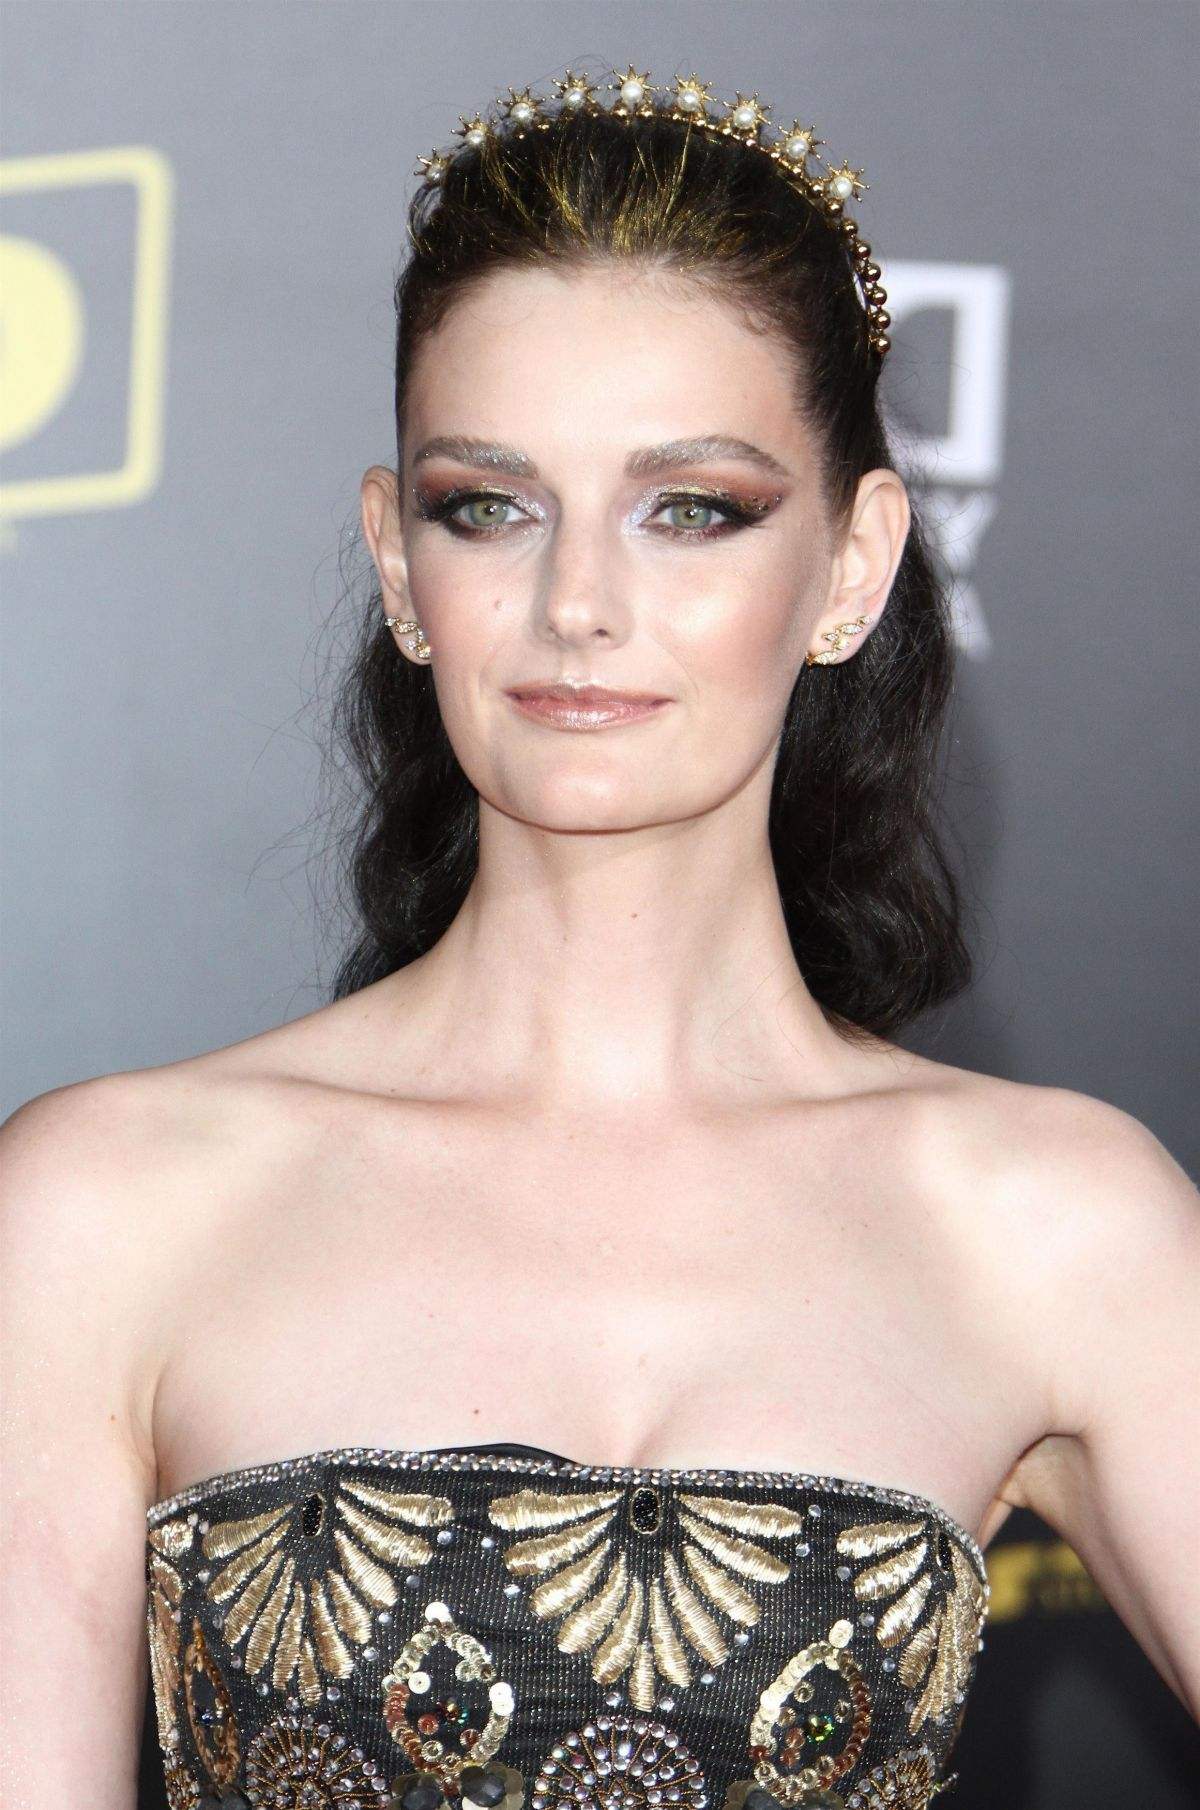 Selfie Lydia Hearst naked photo 2017